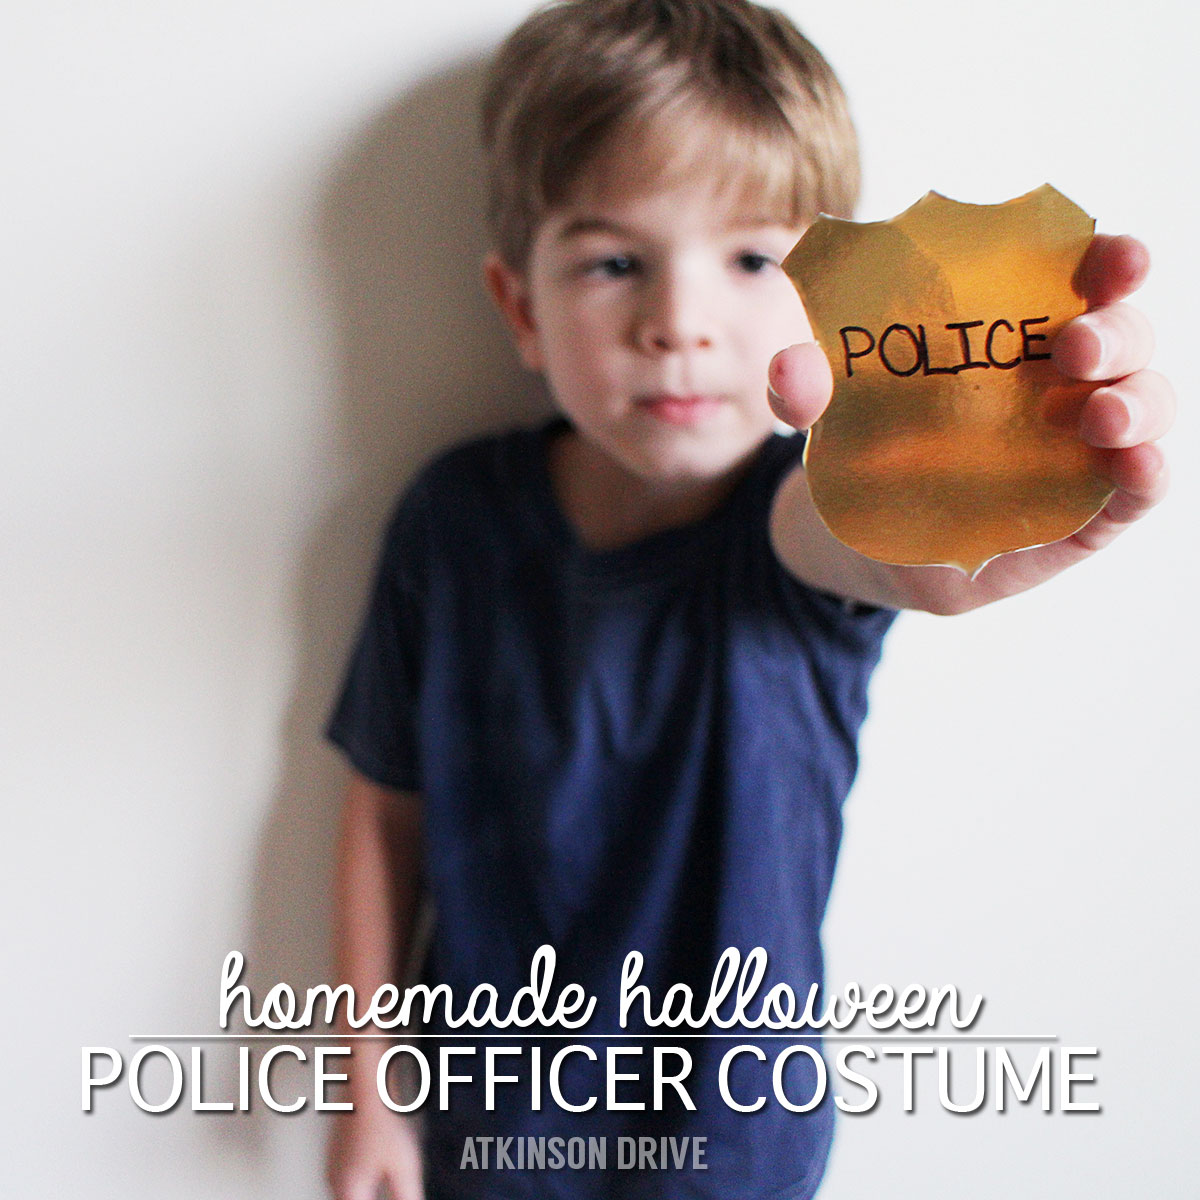 Homemade #Halloween Police Officer #Costume by Atkinson Drive  sc 1 st  Atkinson Drive & Homemade Halloween: Police Officer Costume | Atkinson Drive